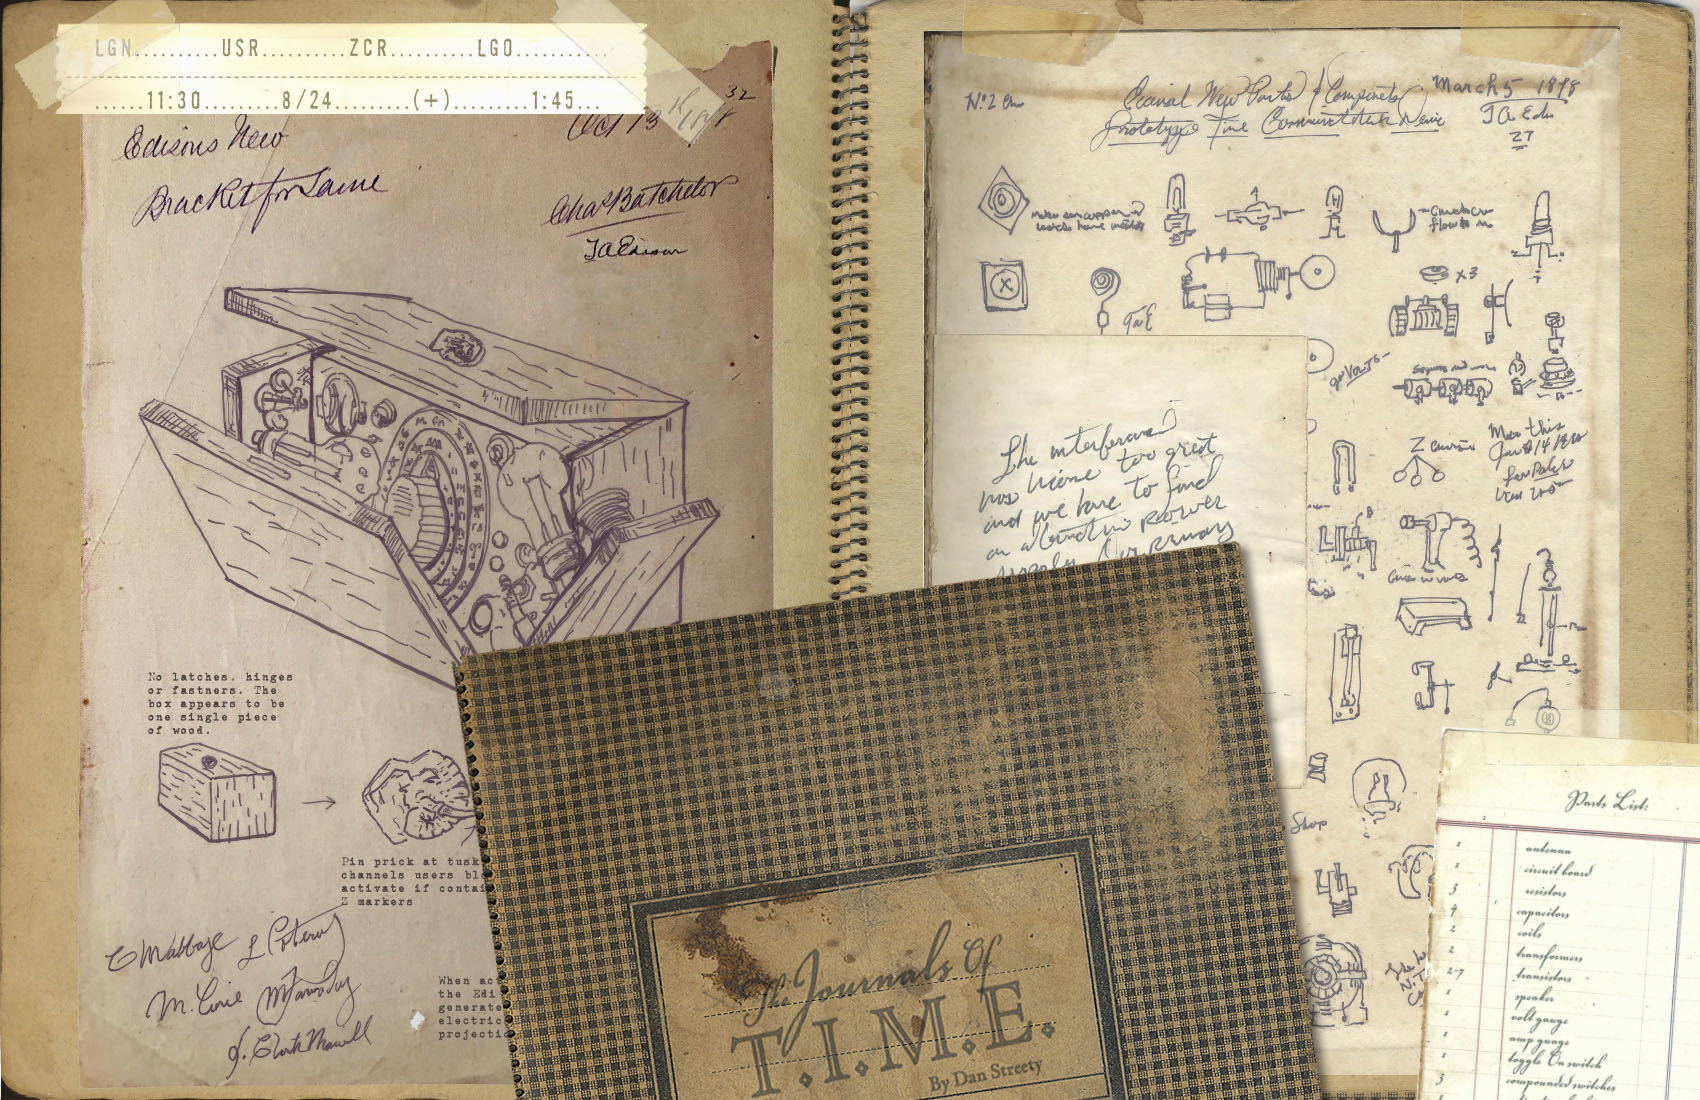 Photograph of various old notebooks and papers with diagrams and illustrations on them.